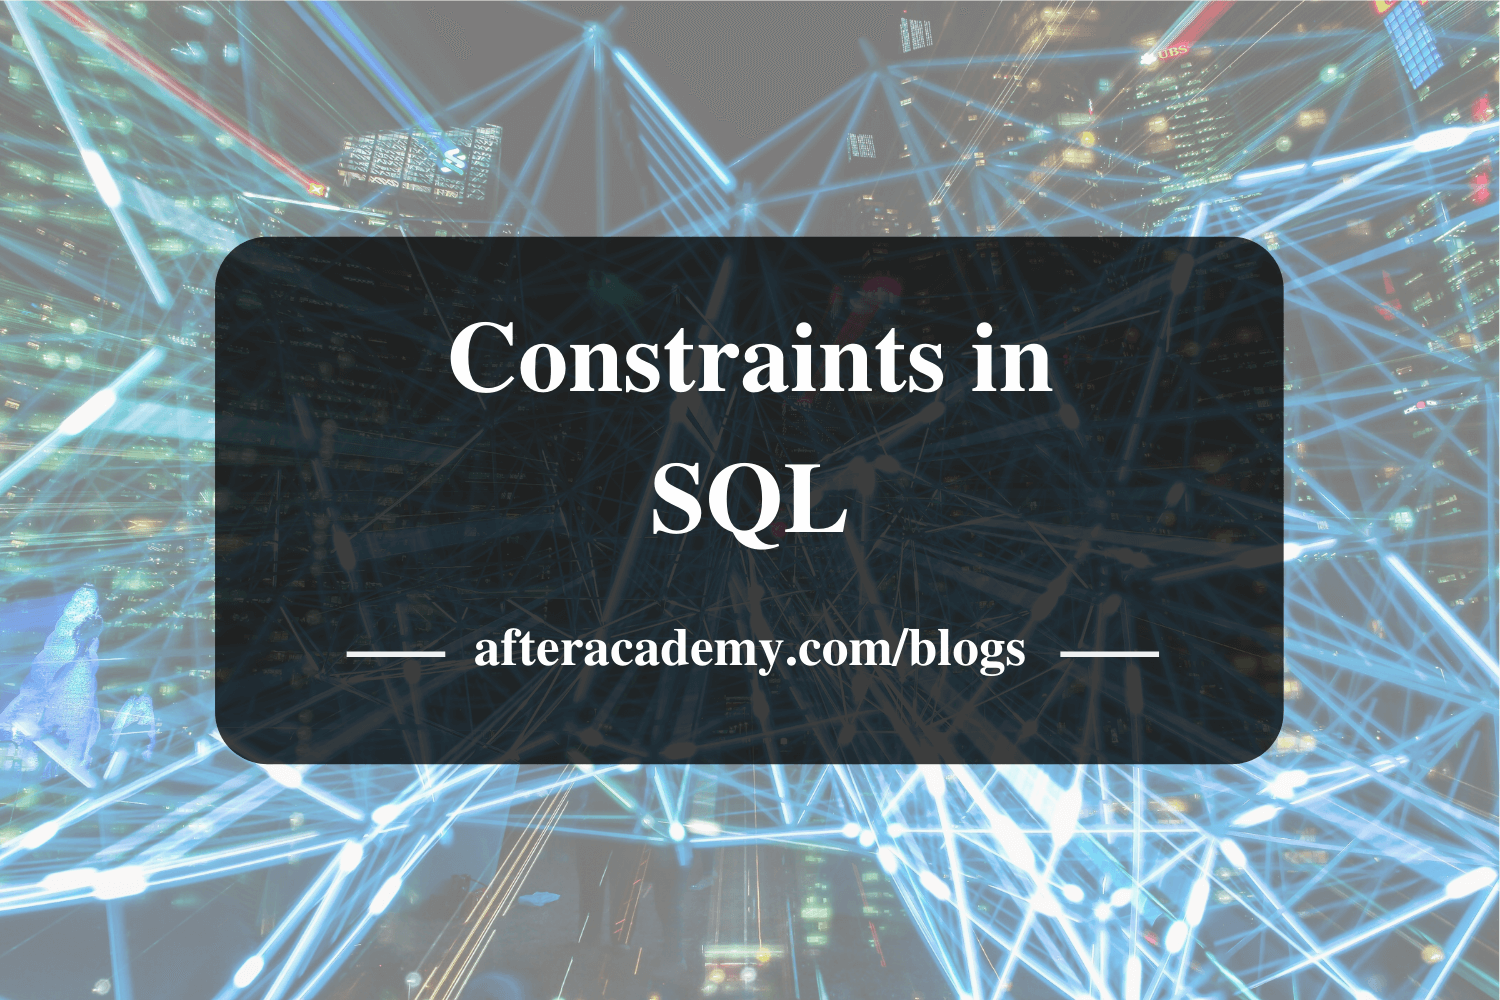 What are the various types of constraints in SQL?